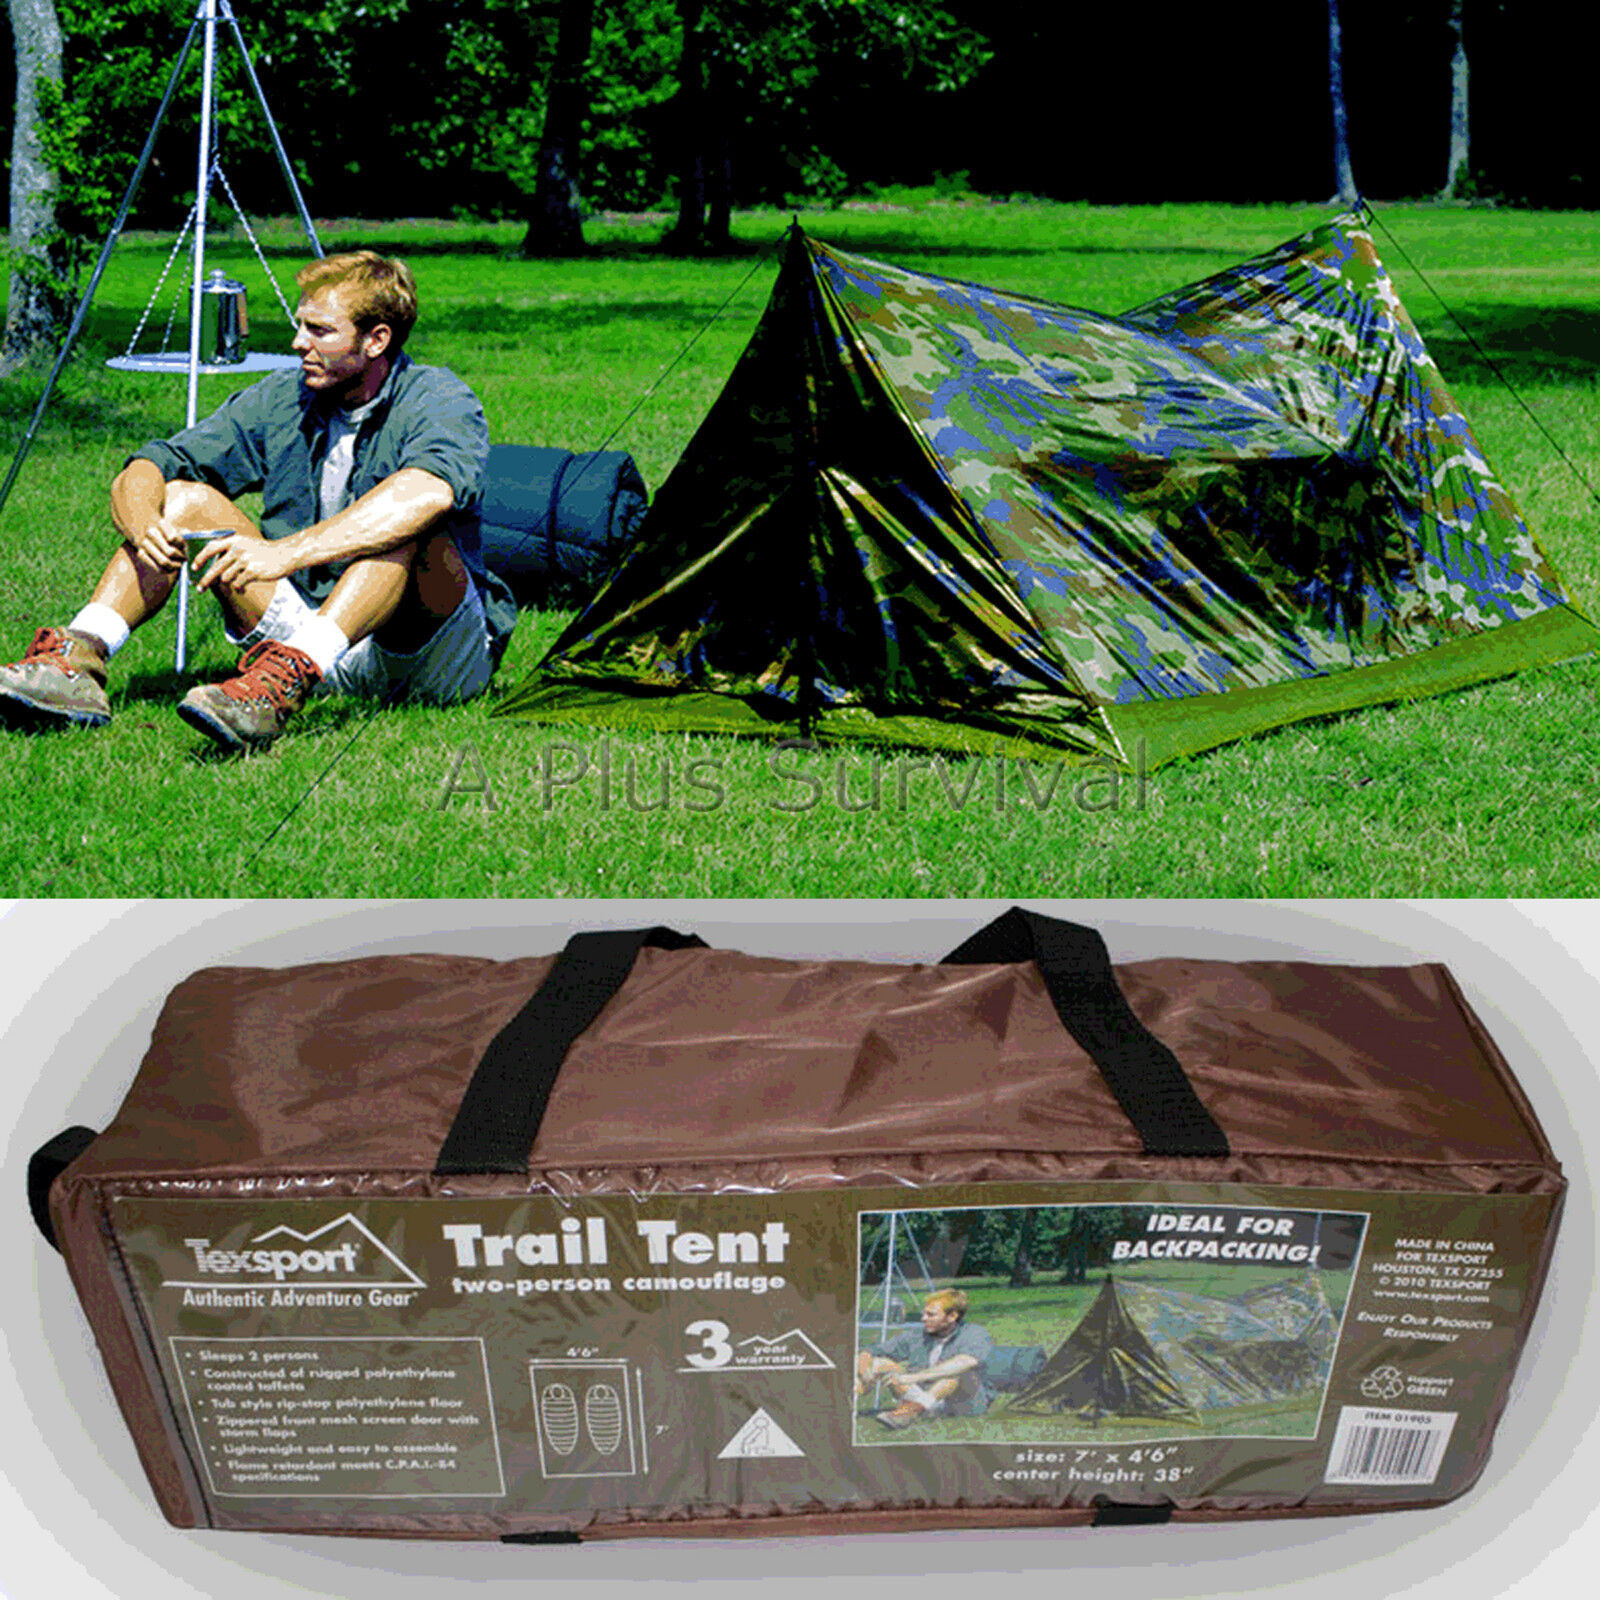 Texsport Lightweight Camouflage 2 Person Trail Tent